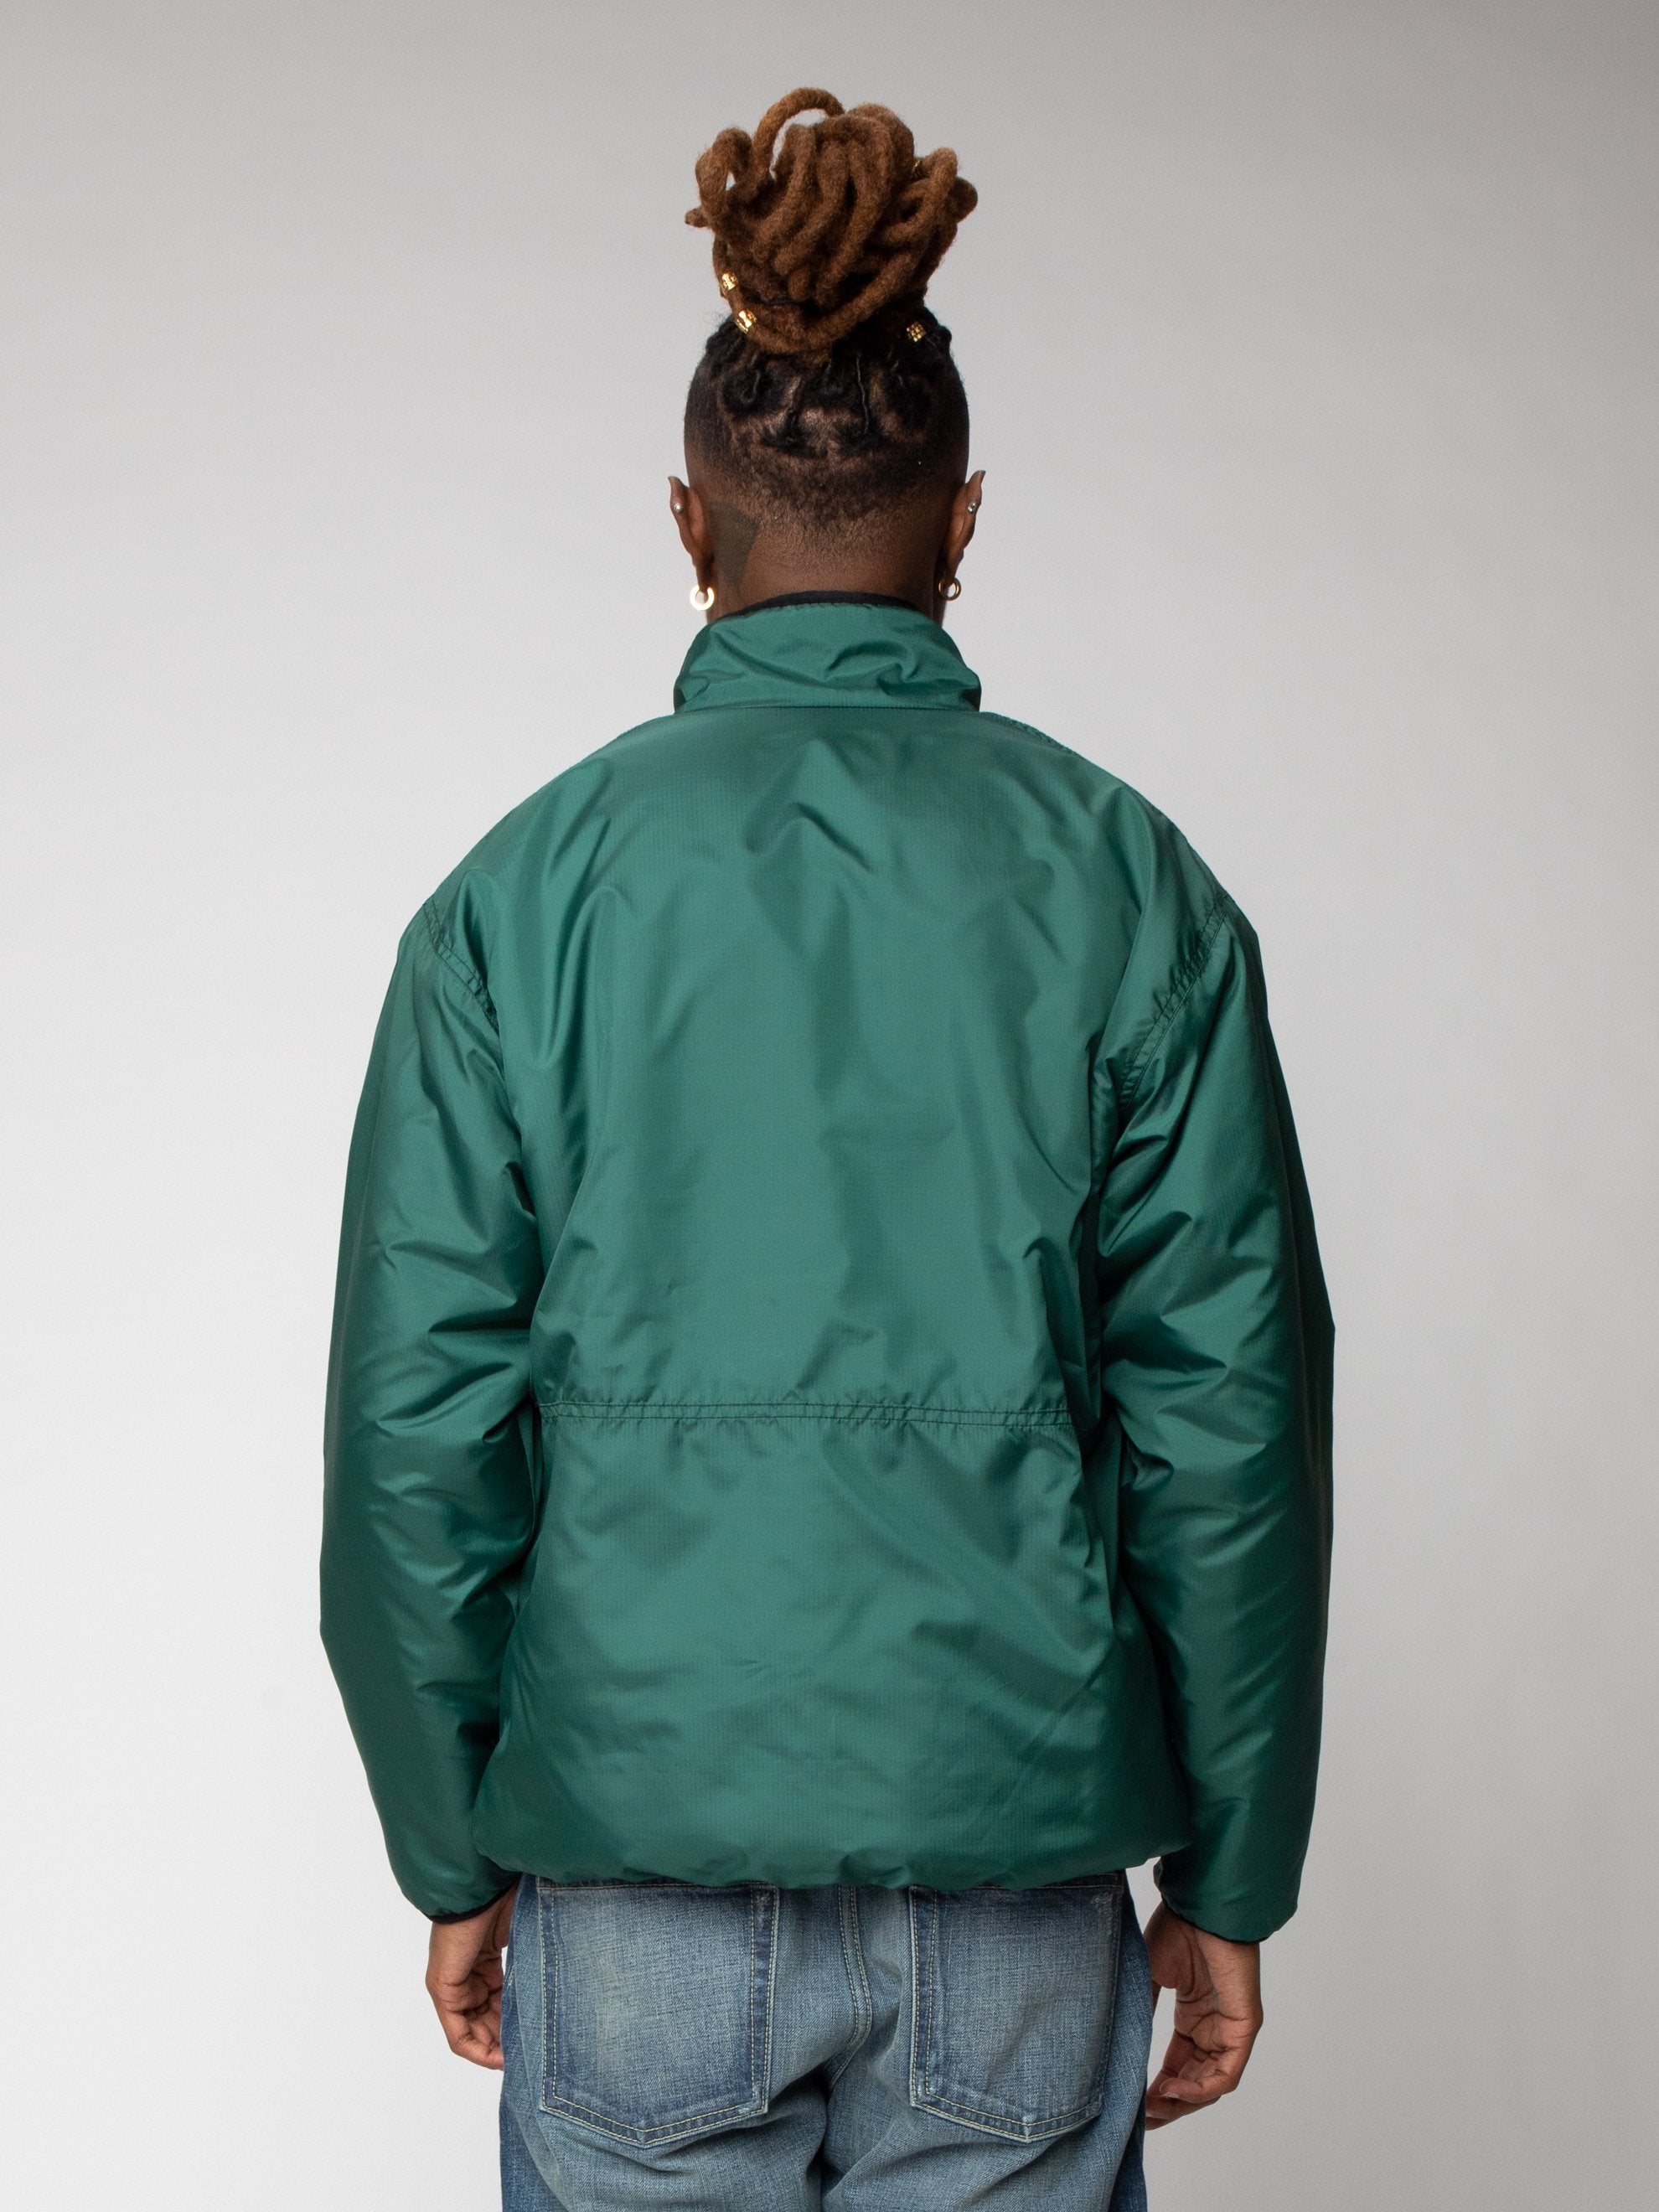 Green Reversible Boa Fleece Jacket 7